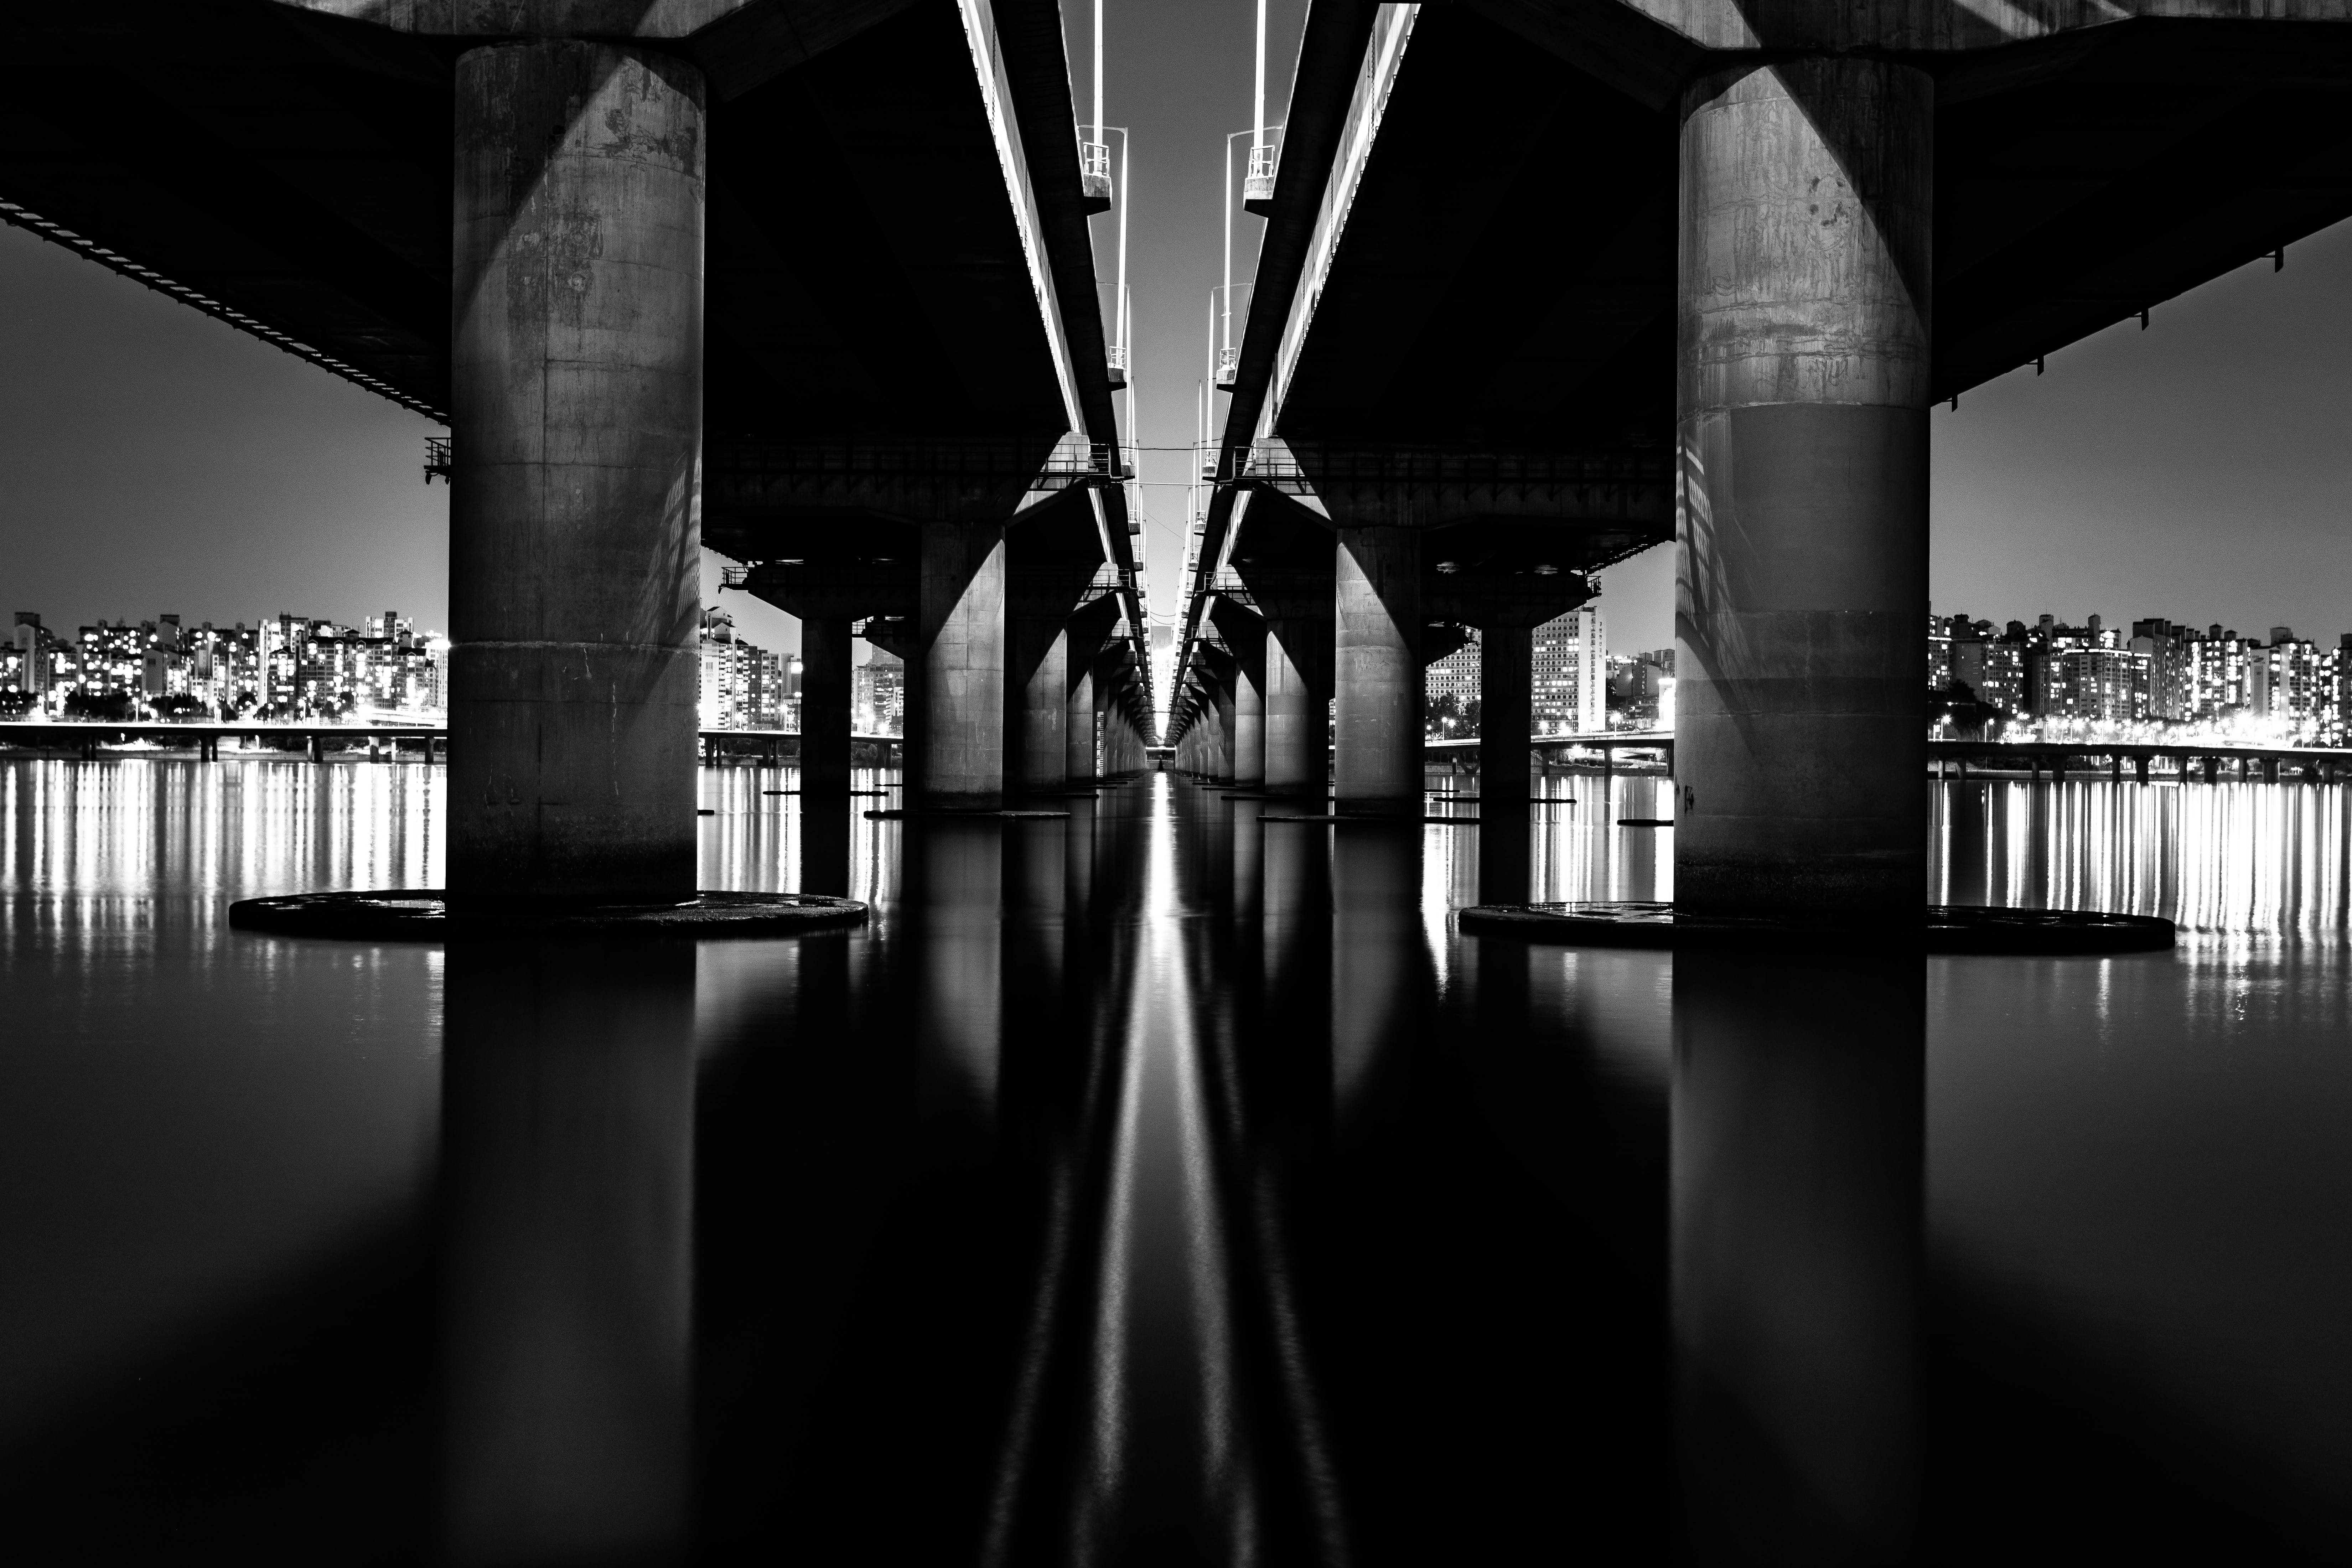 Bridge on Body of Water in Grayscale Photography